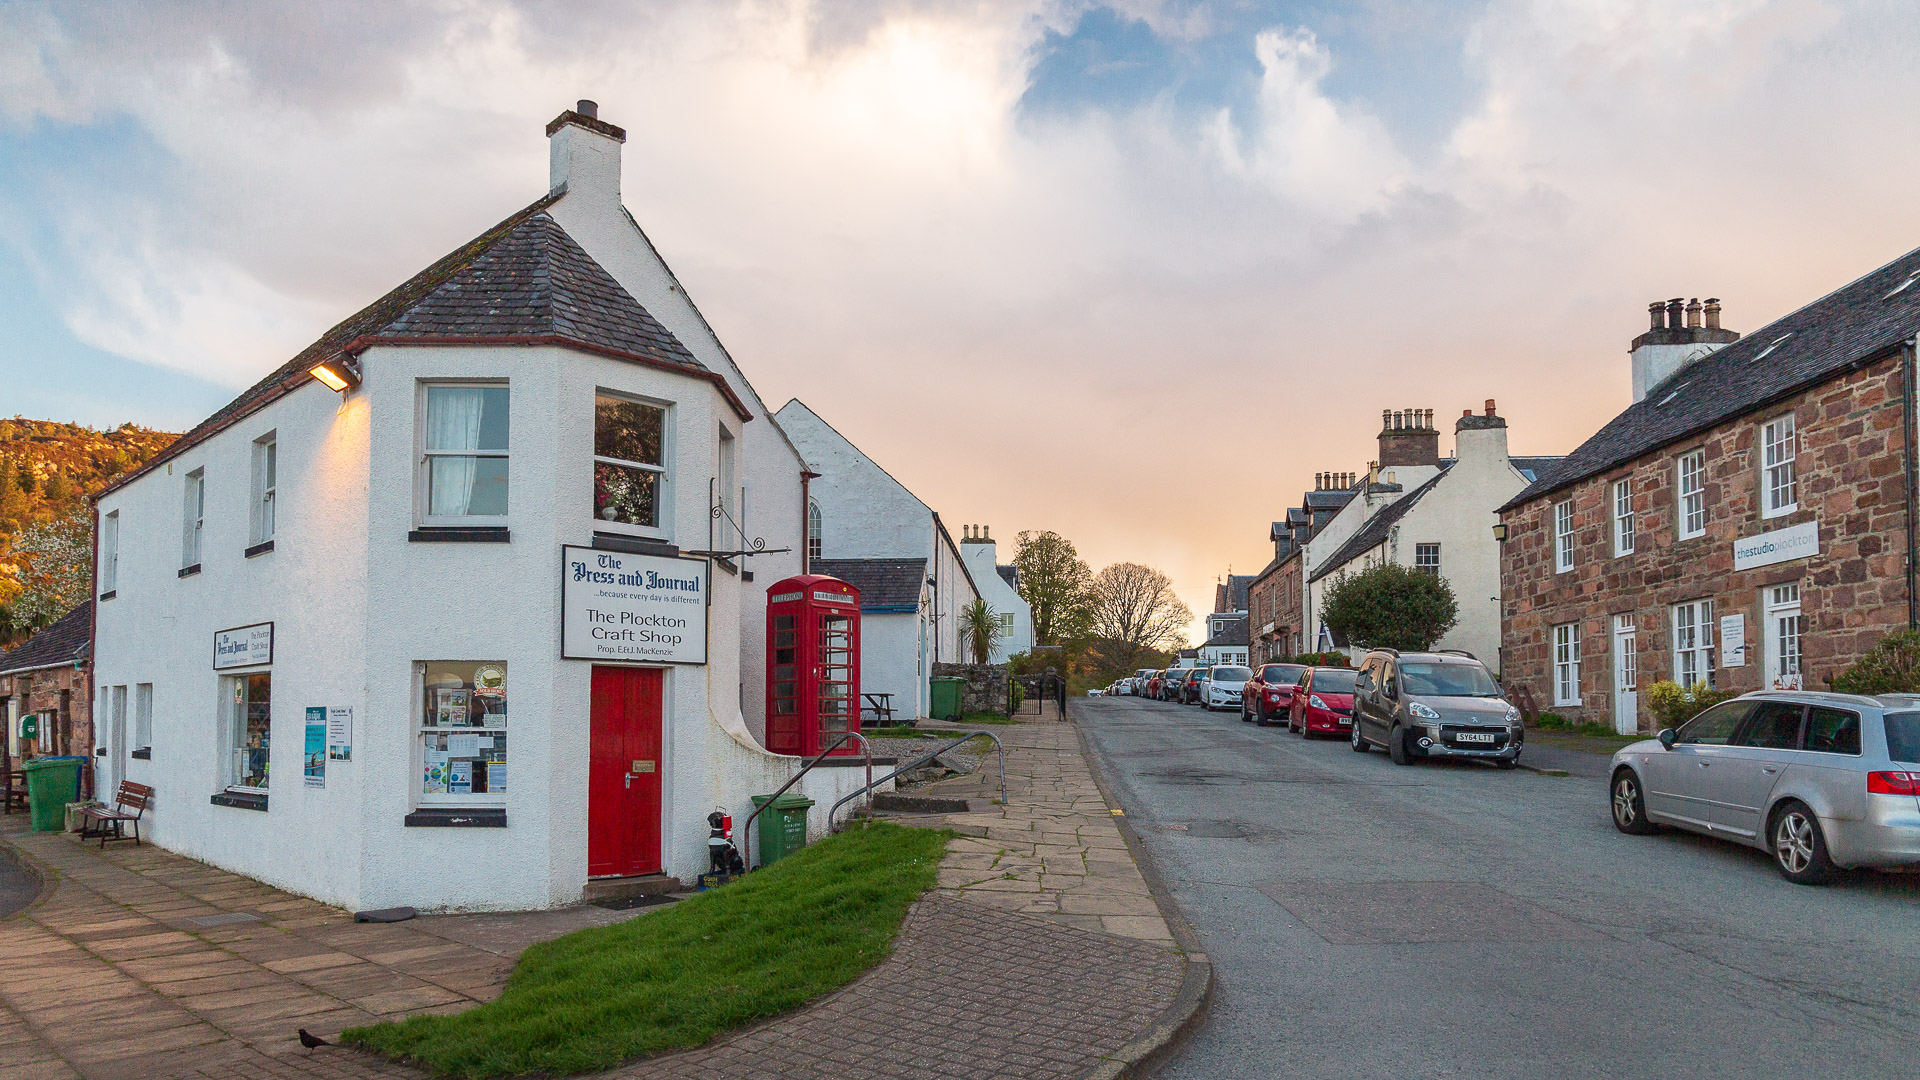 Plockton Craft Shop